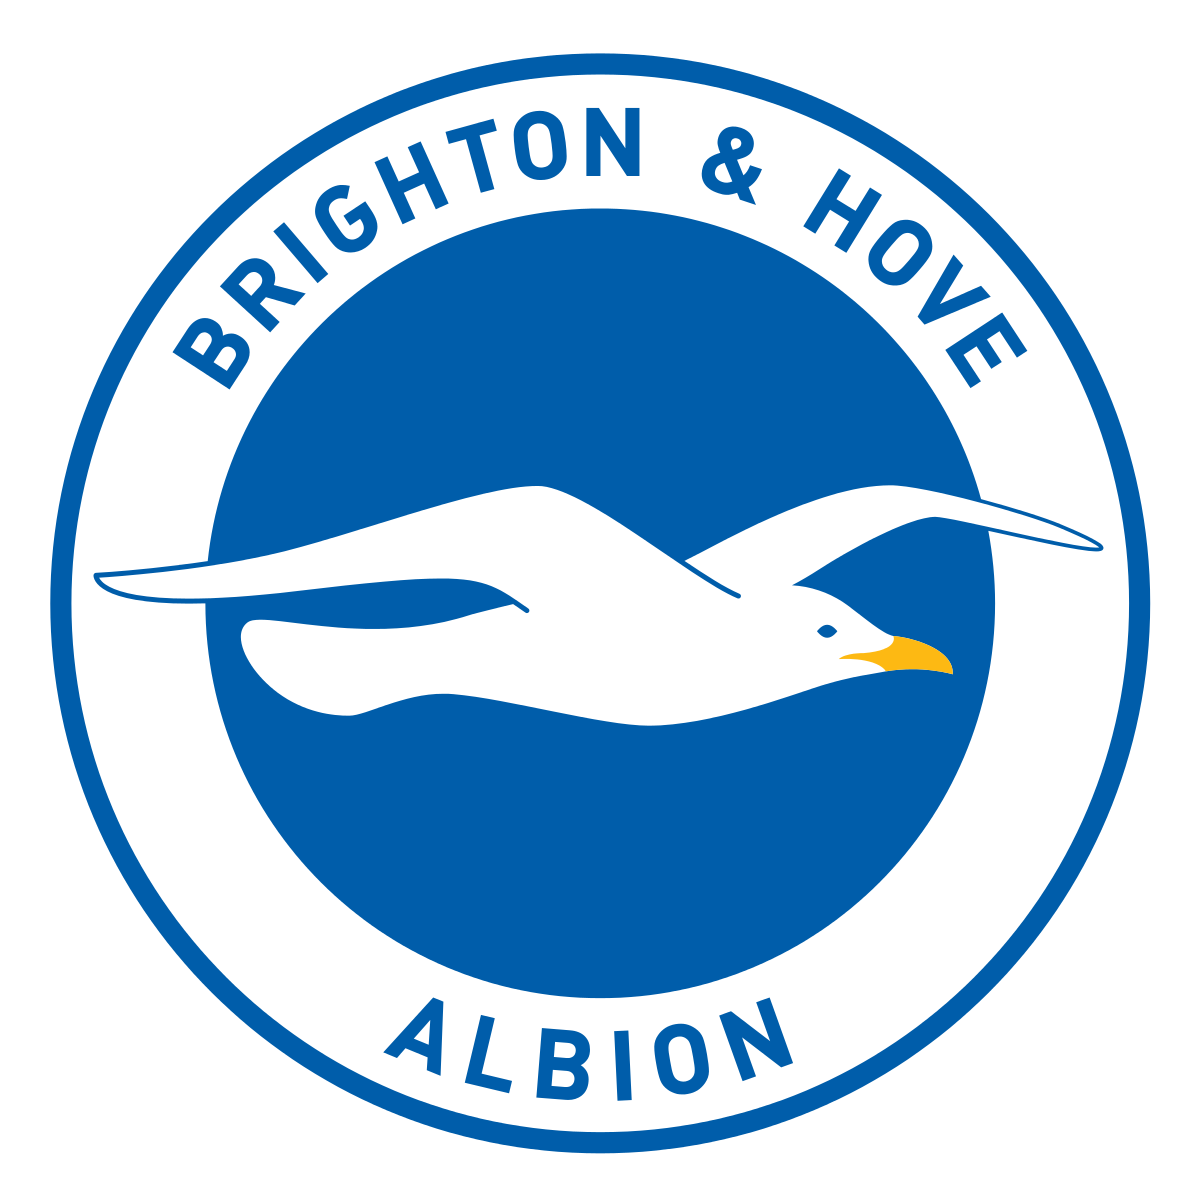 Brighton (u21) team logo